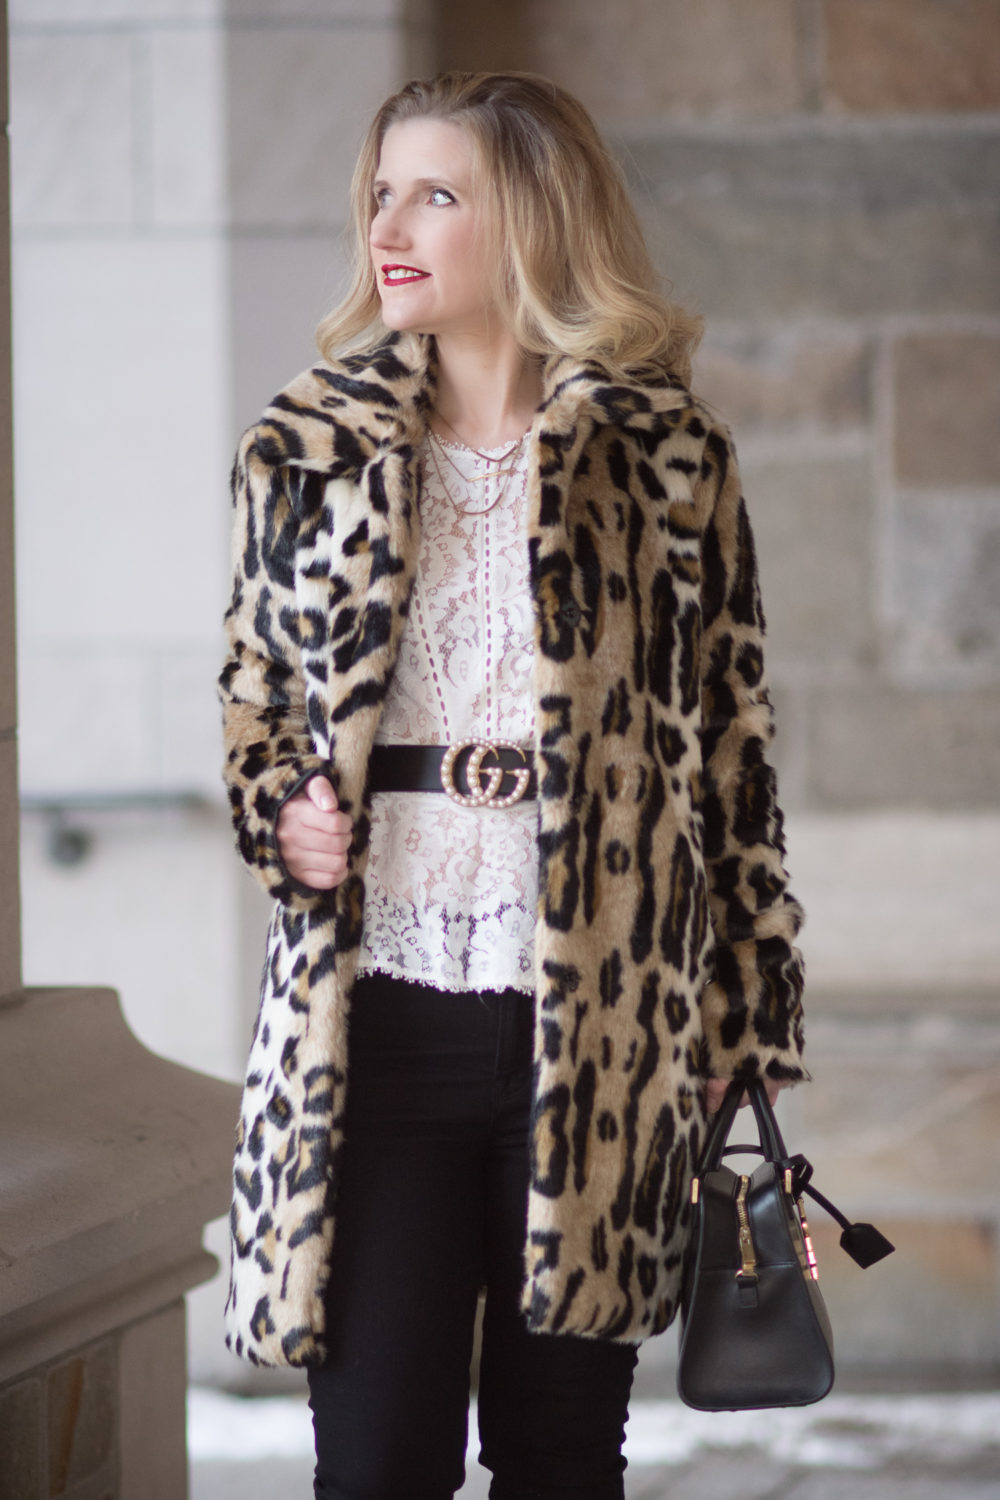 Petite Fashion Blog | Fashion for Petite Women | Kensie Leopard Coat | Gucci Double G Pearl Belt | Rebecca Taylor Lace Peplum Top | Christian Louboutin Red Heels